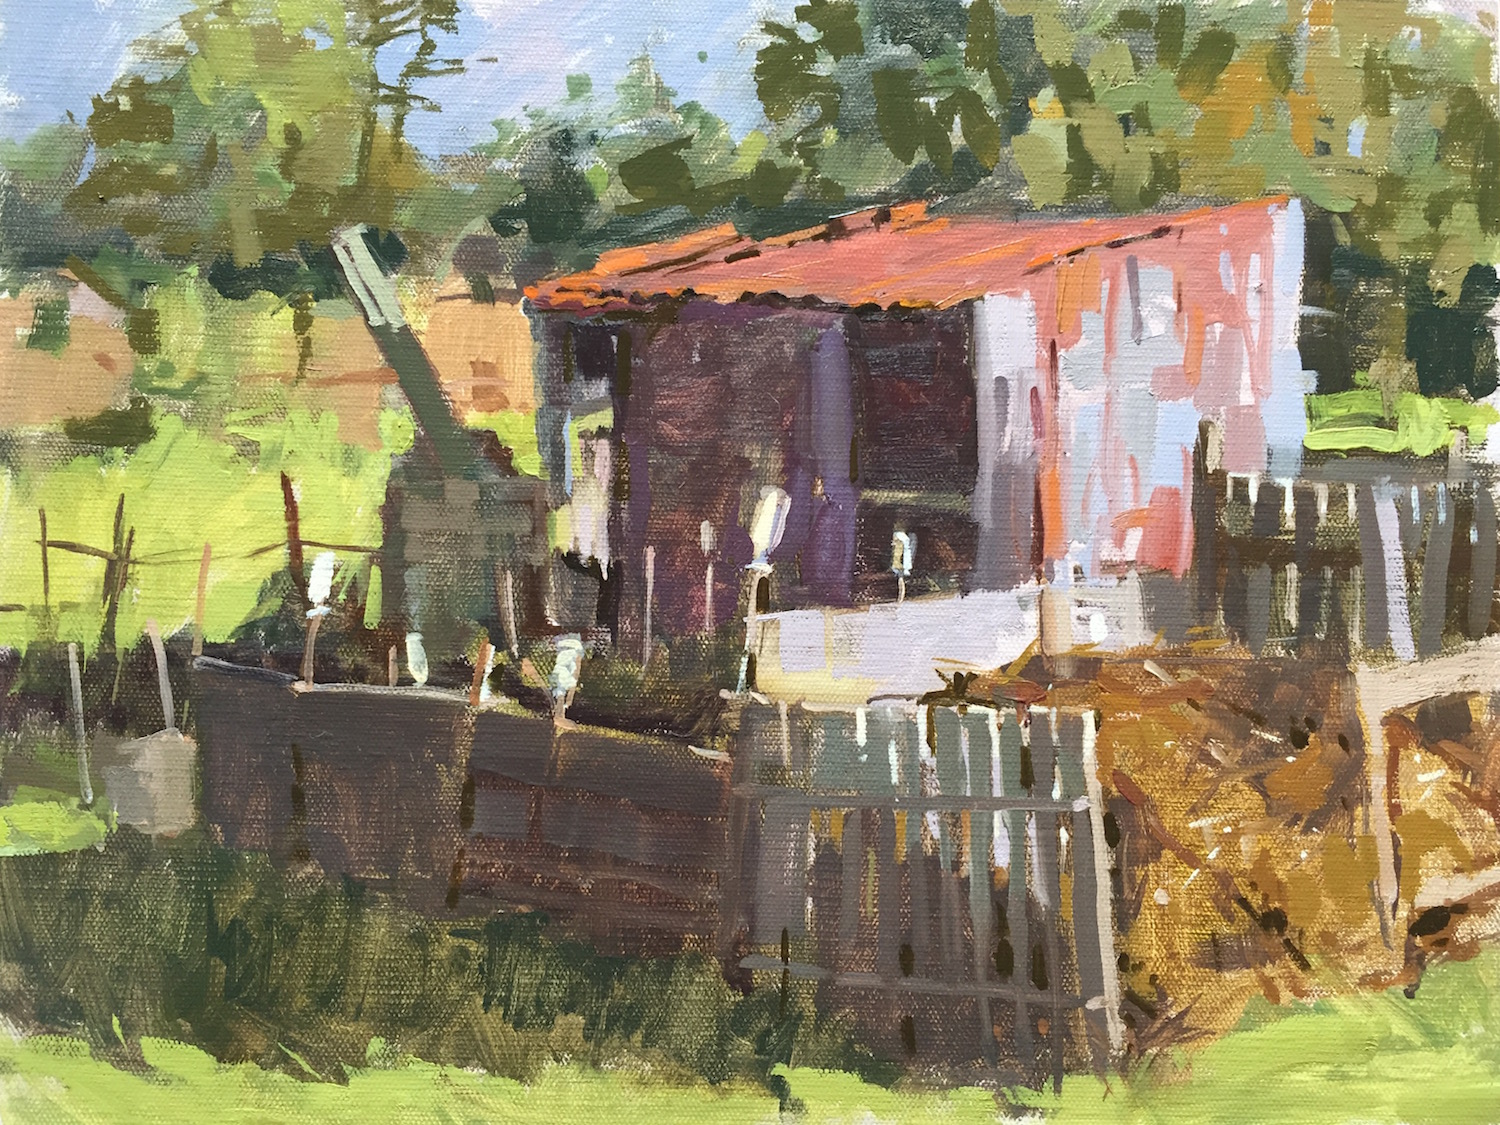 Rusty shed, Holt allotments - Haidee-Jo Summers, Oil on canvas